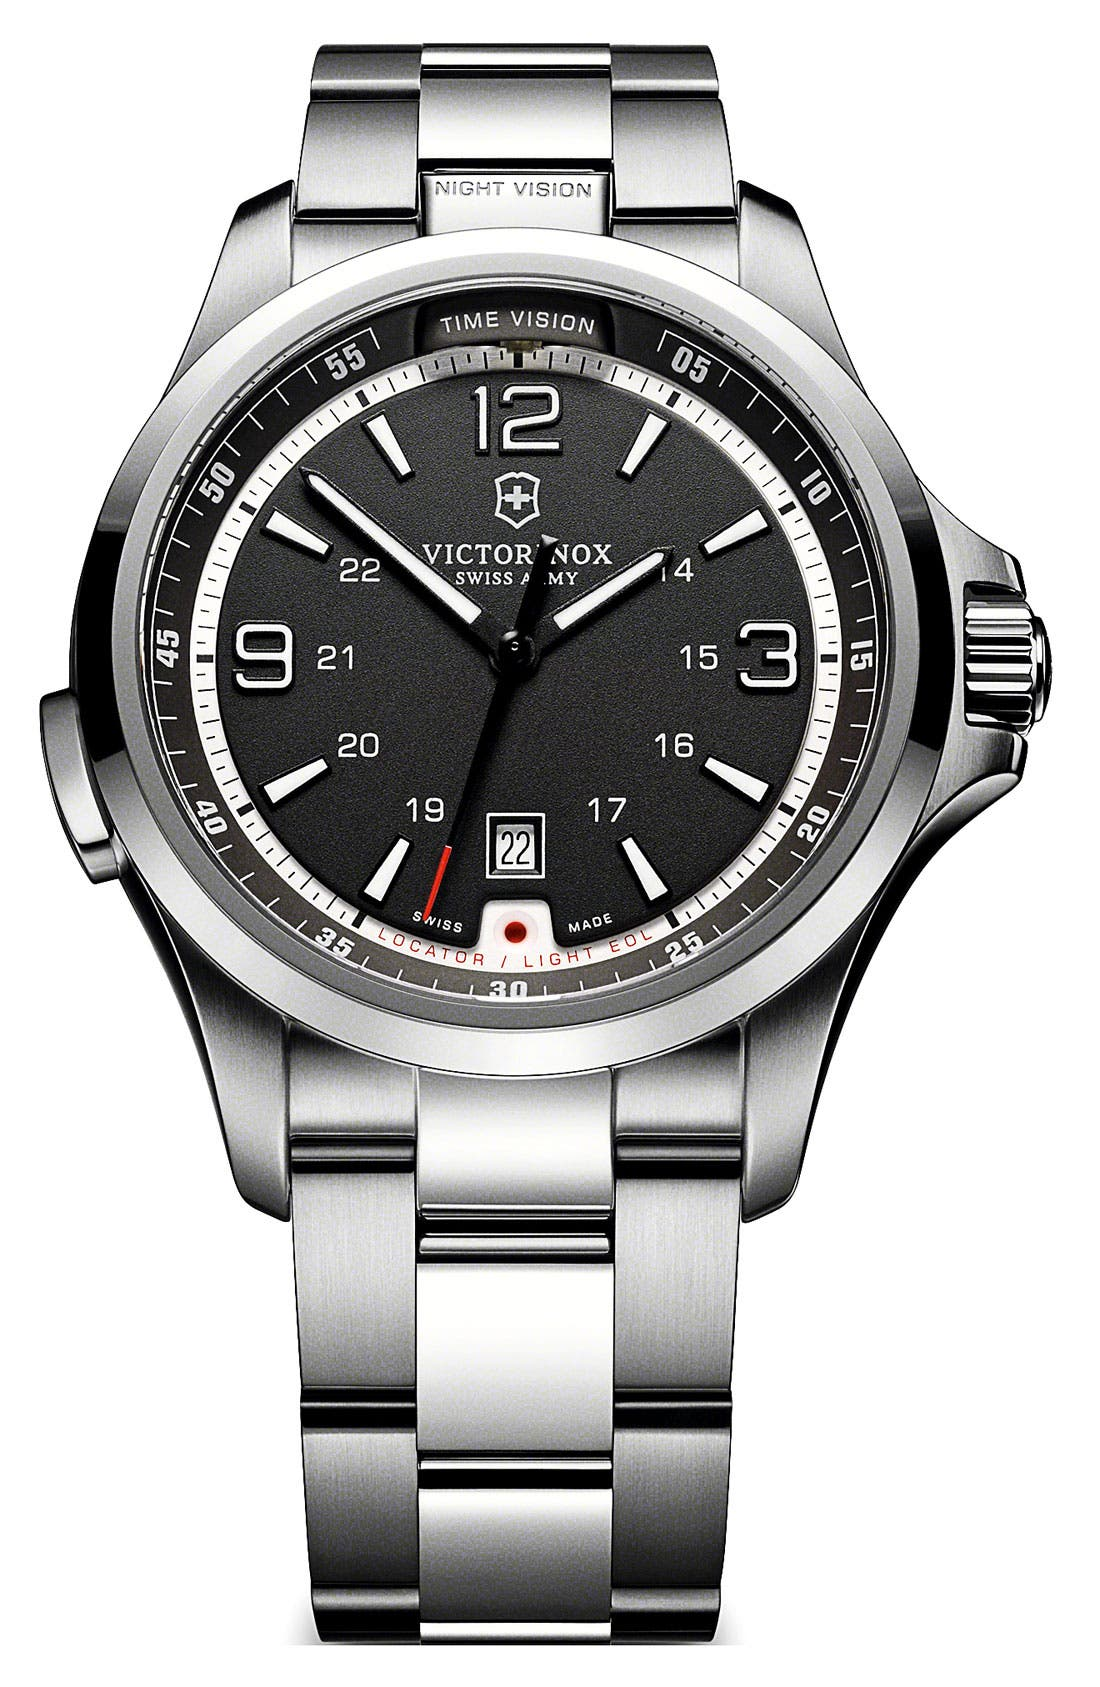 Main Image - Victorinox Swiss Army® 'Night Vision' Bracelet Watch, 42mm